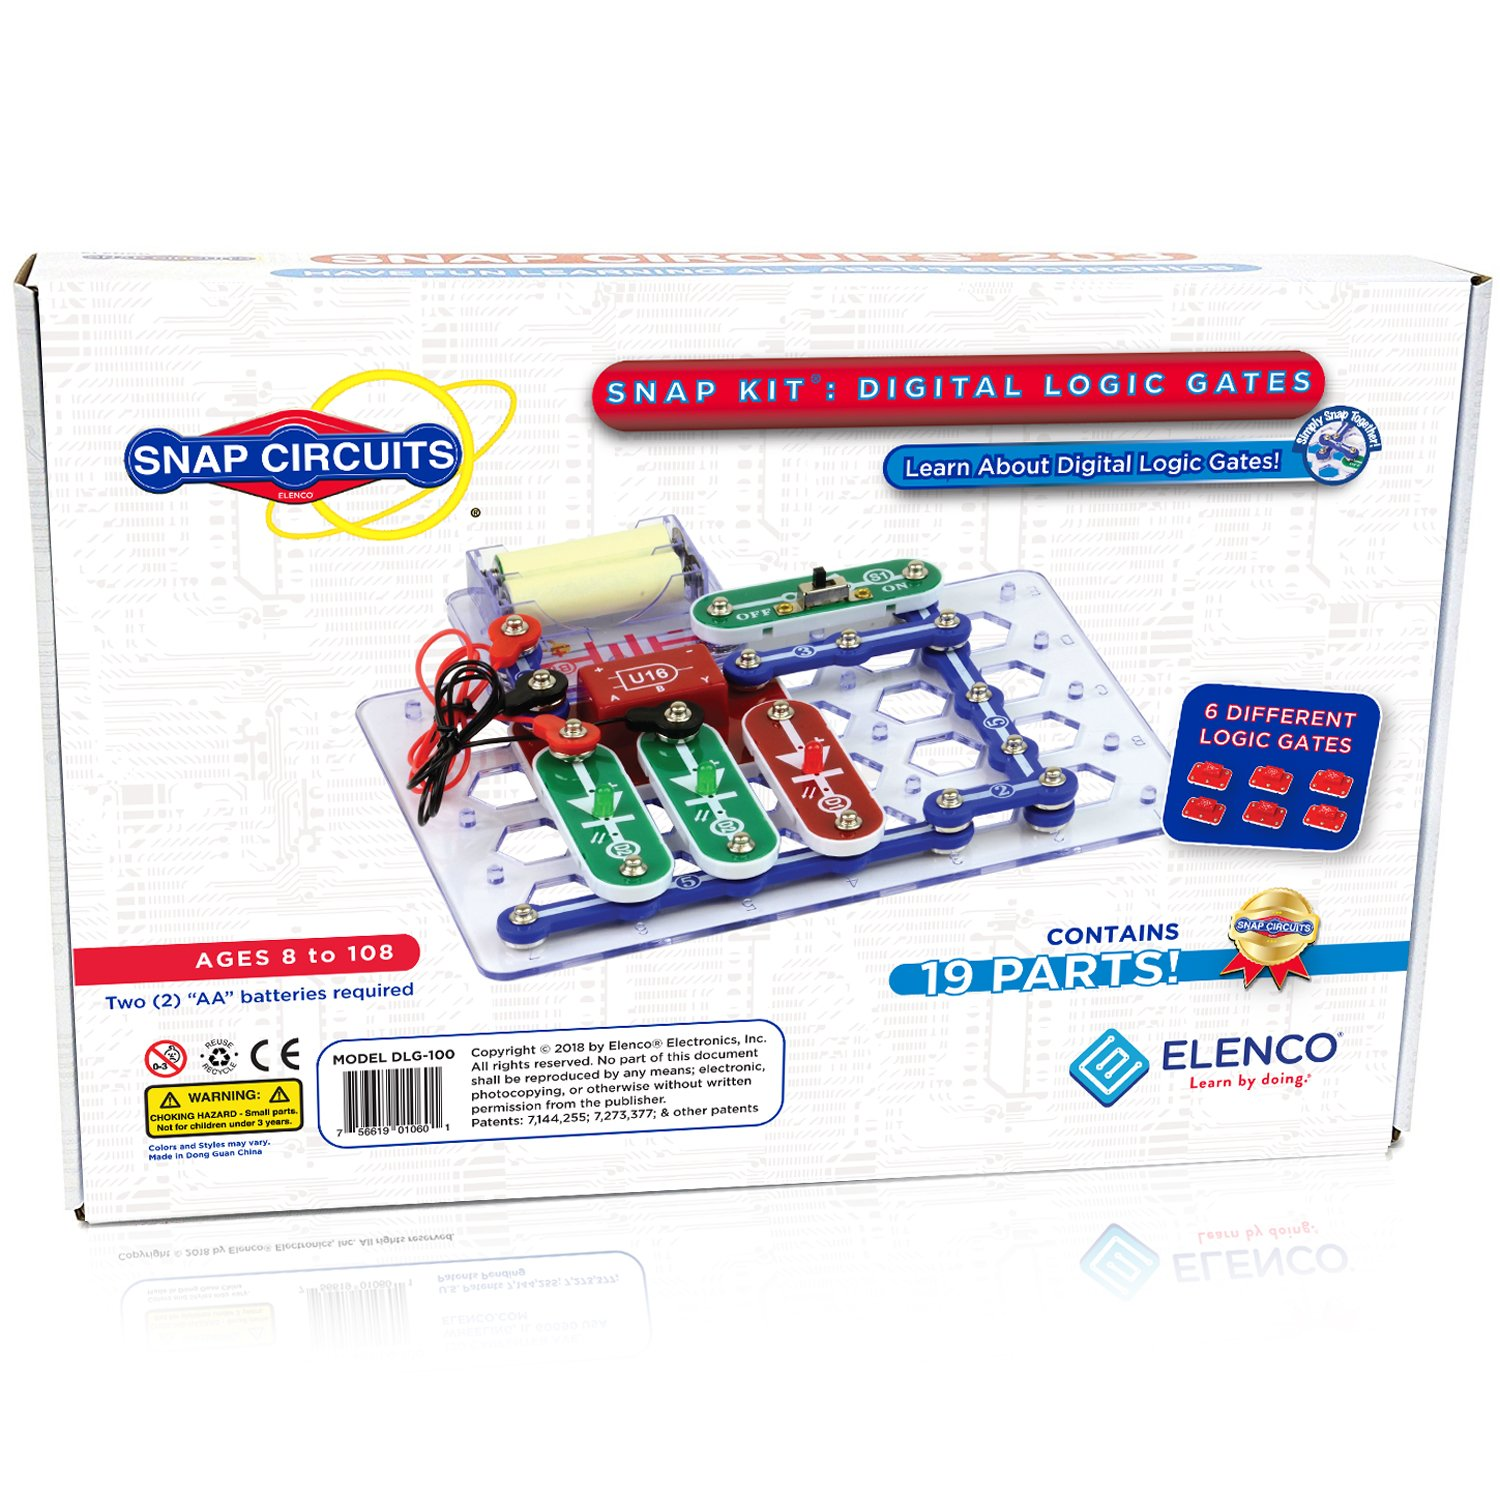 Snap Circuits Digital Logic Gates 100 Exploration Kit | 4-Color  Downloadable Project Manual | 13 Snap Modules | 6 Logic Gates | NOT Gate~AND Gate~OR Gate~NAND Gate~NOR Gate~XOR Gate | STEM Curriculum